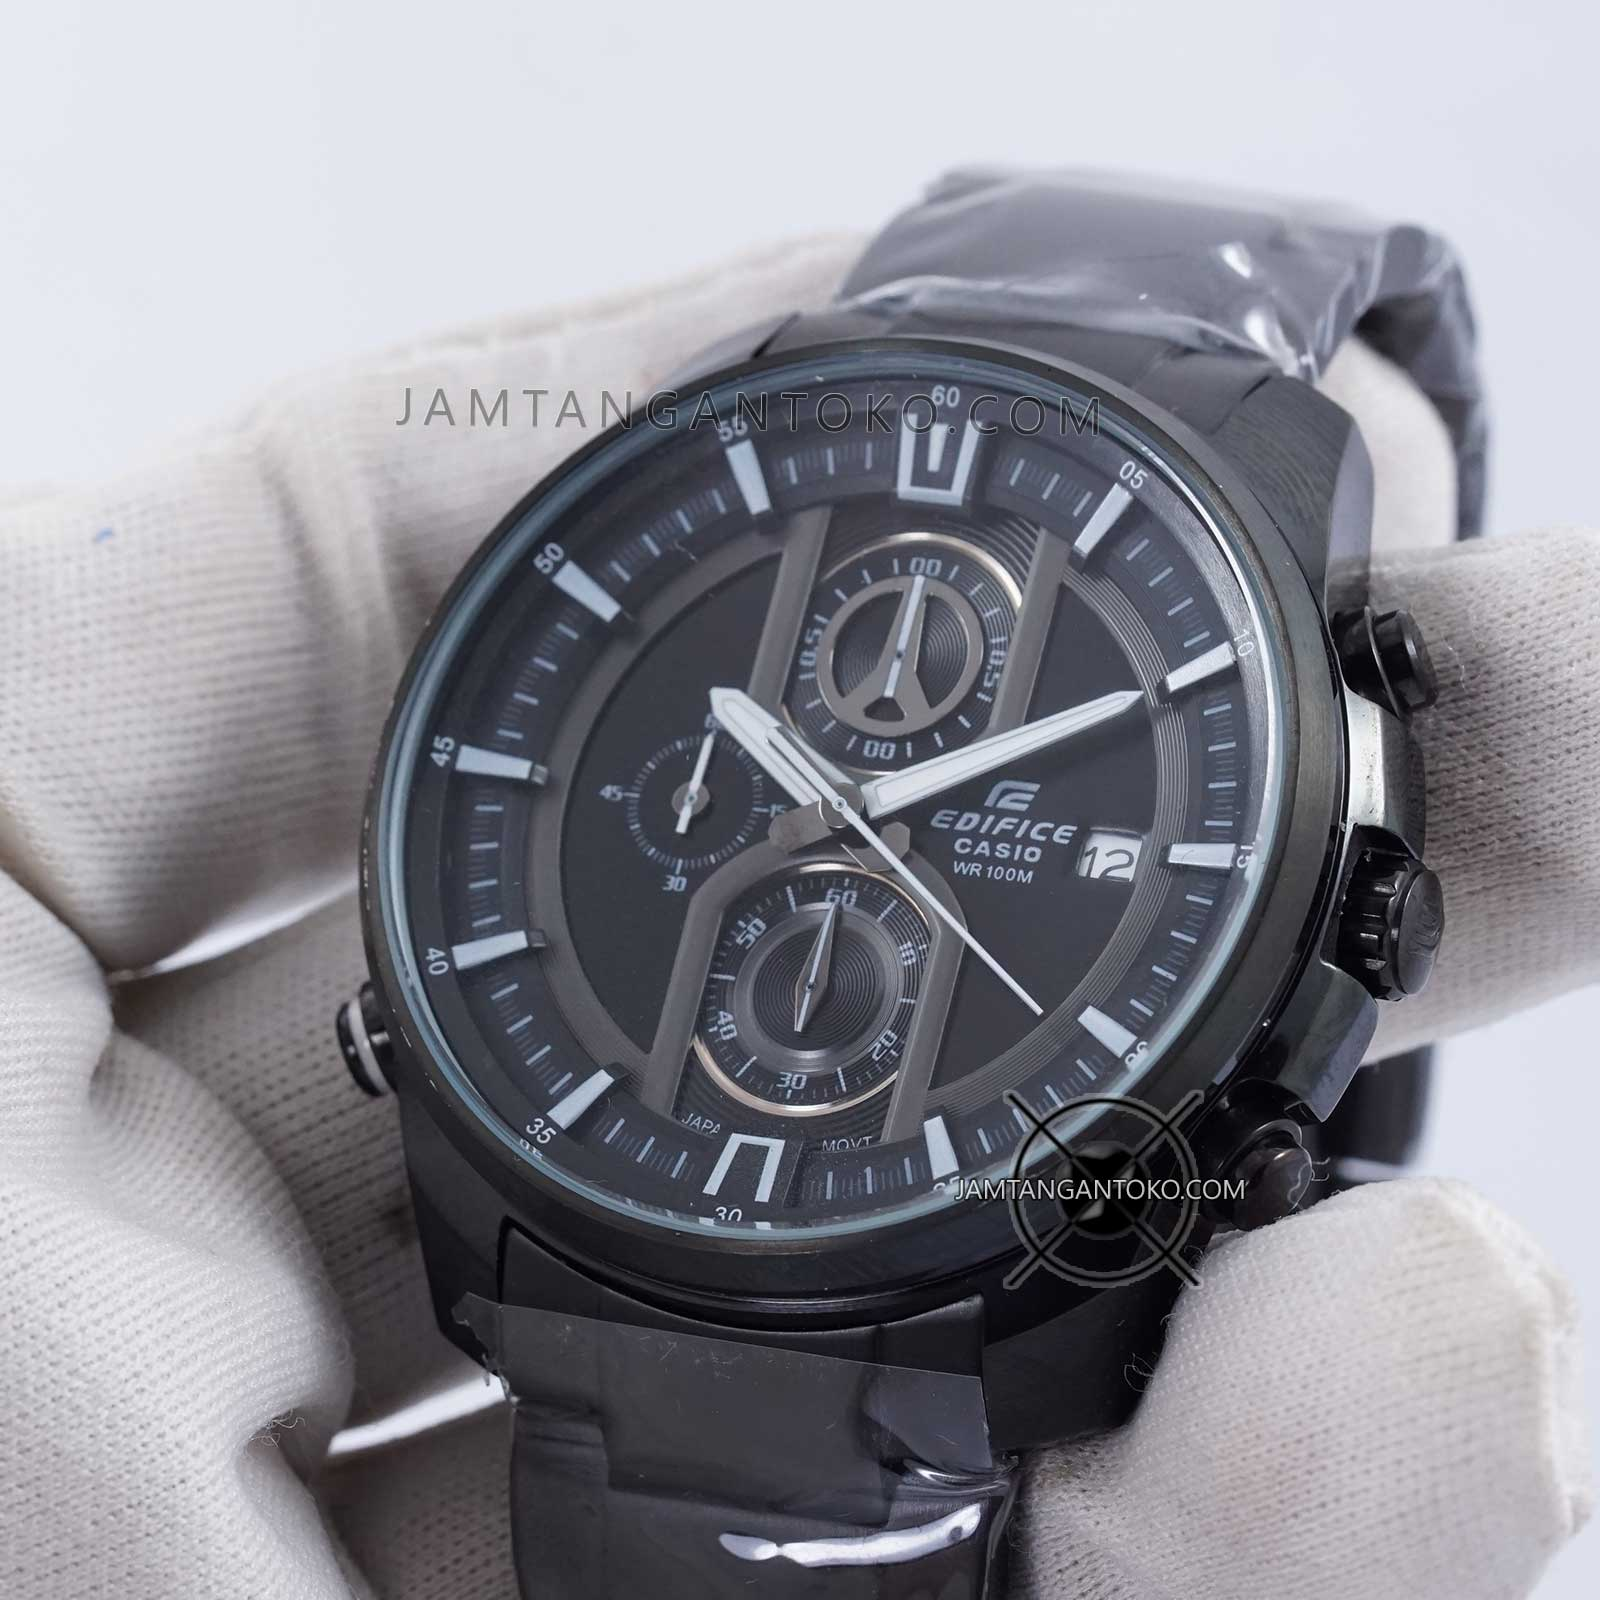 Casio Edifice Efr 539bk 1a2 Jam Tangan Pria Hitam Daftar Harga 101d 7avdf Stainless Steel White Lazada Indonesia Source